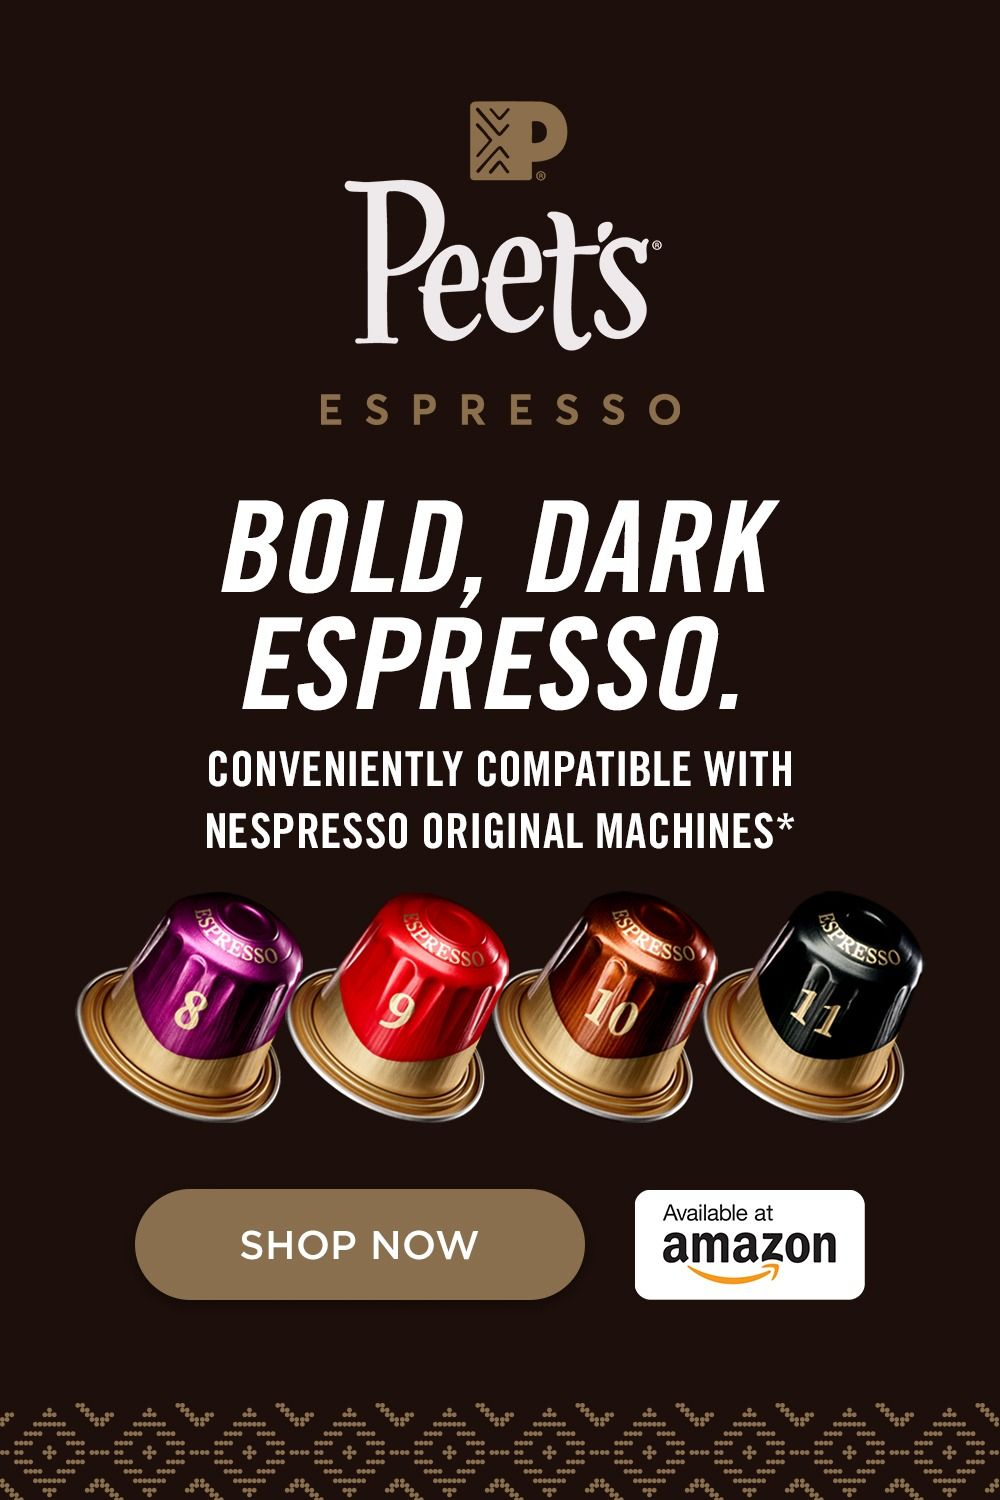 Delve into a deeper kind of dark with the complexity and